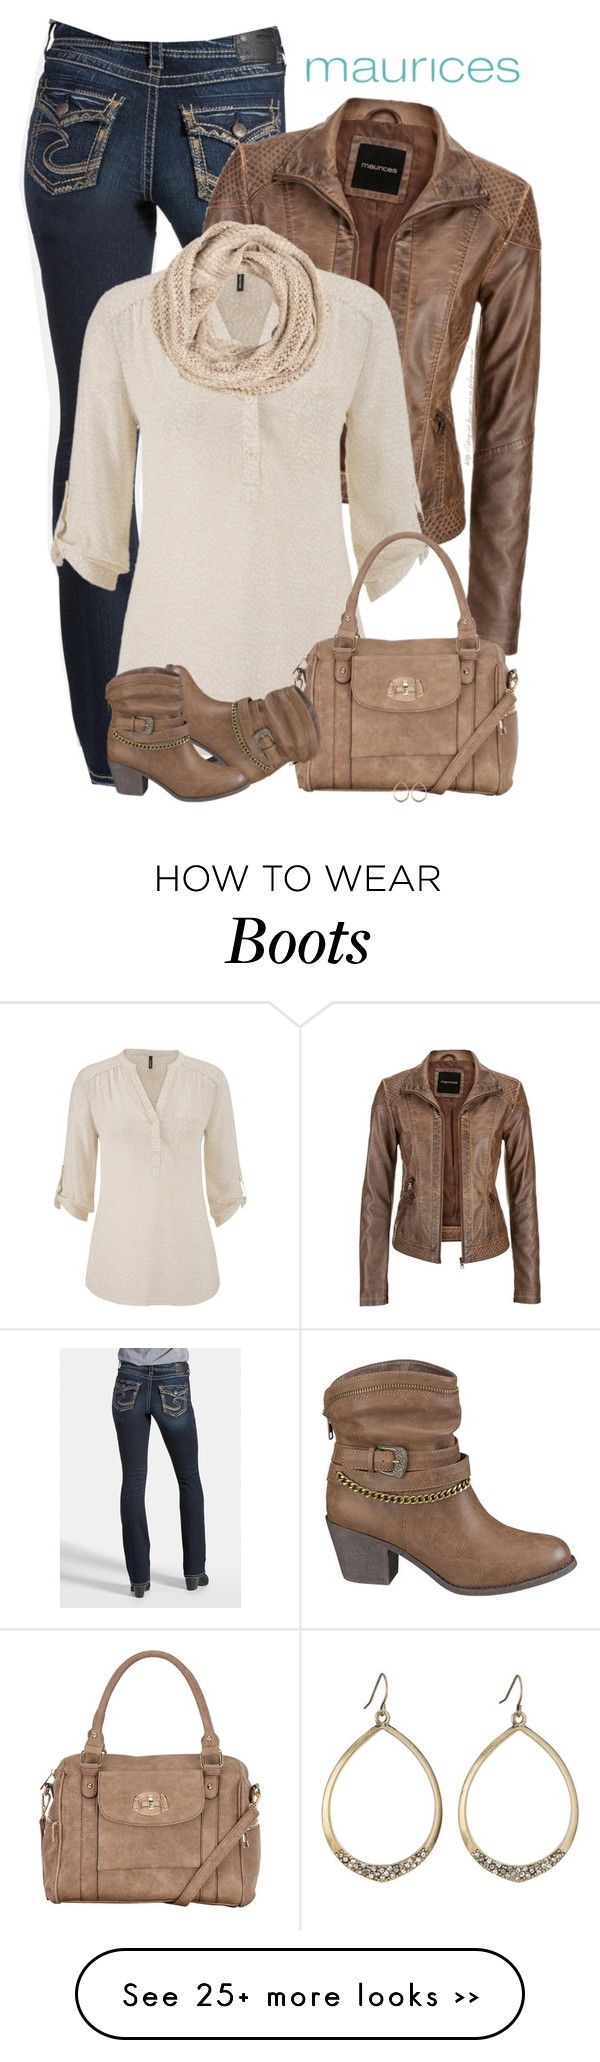 """The Perfect Blouse with maurices: Contest Entry"" by stay-at-home-mom on Polyvore featuring maurices, blouse, Maurices and perfectblouse"